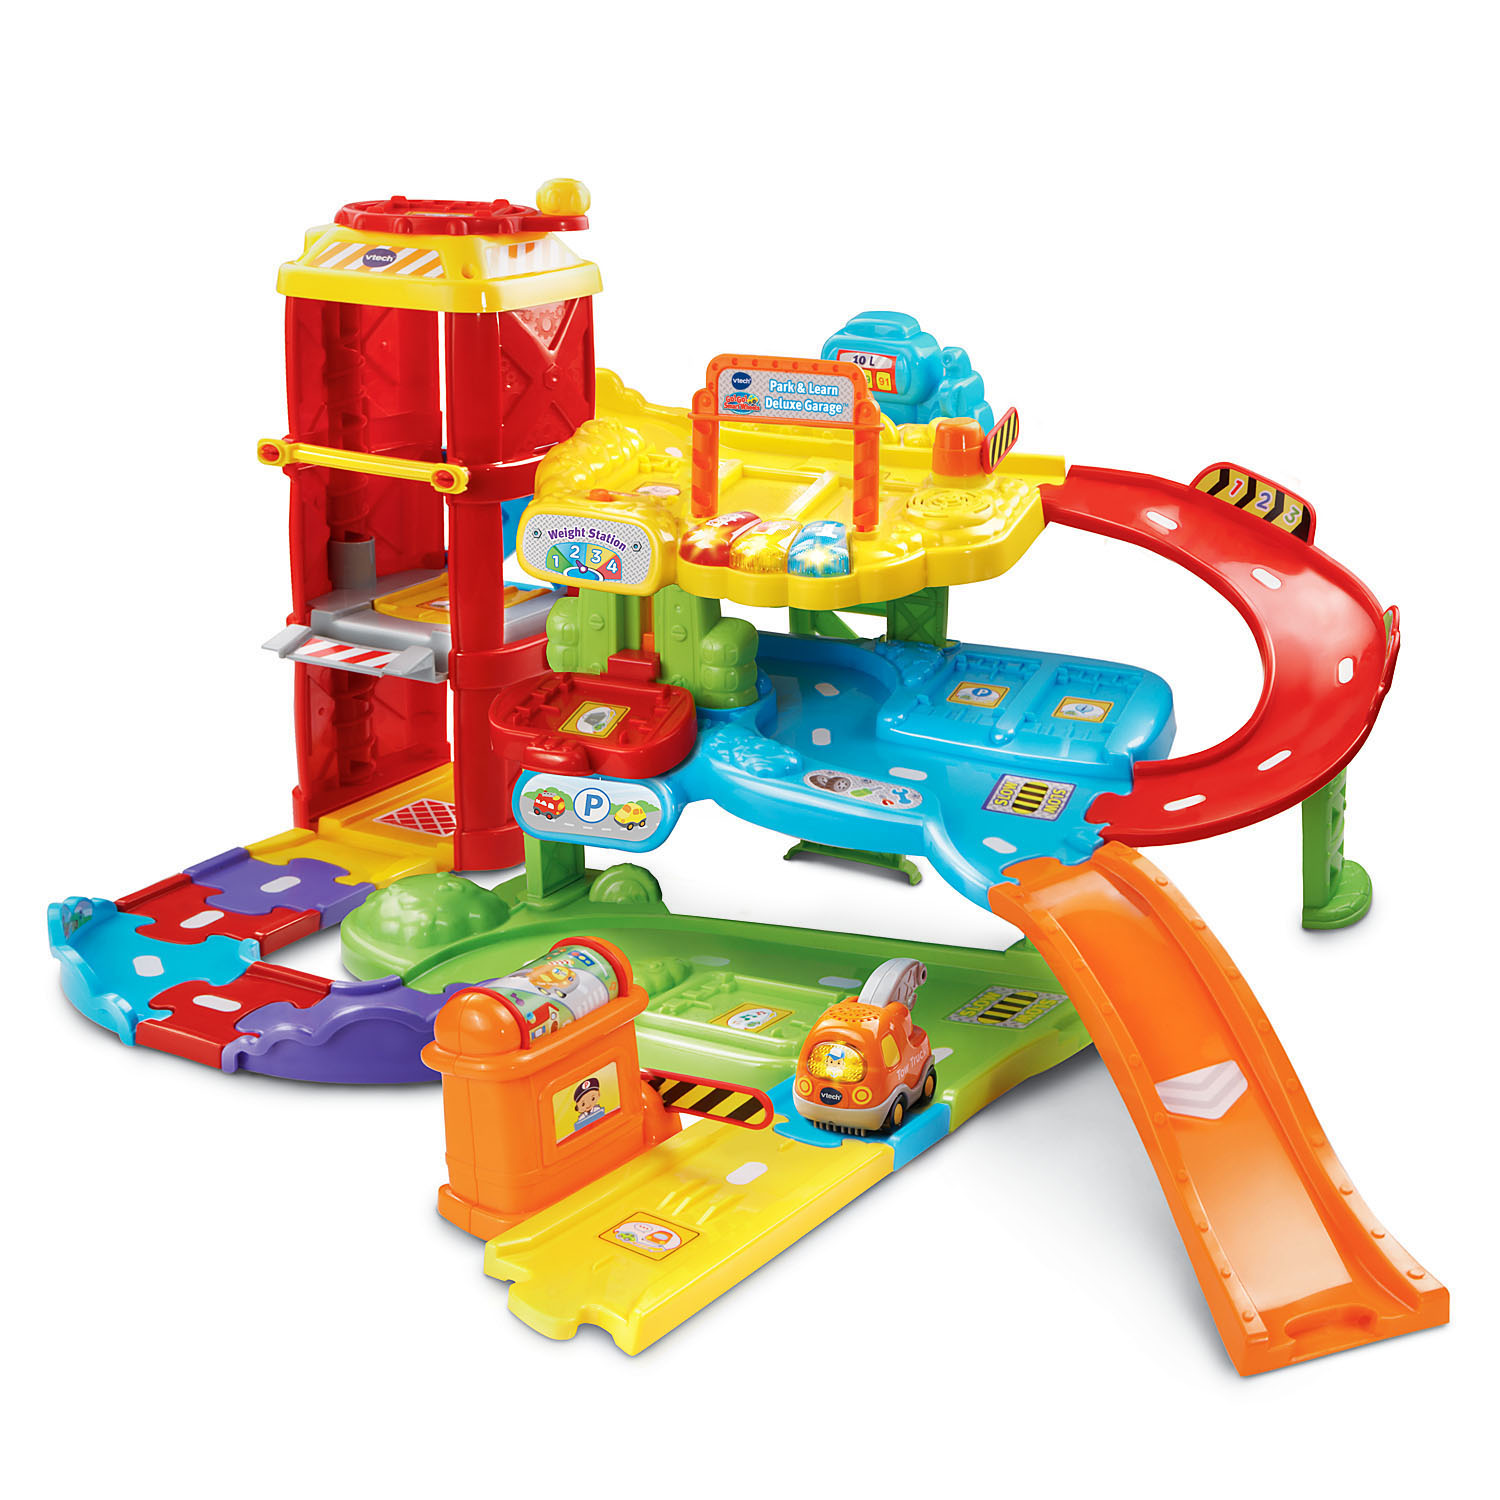 VTech Go! Go! Smart WheelsPark & Learn Deluxe Garage by VTech